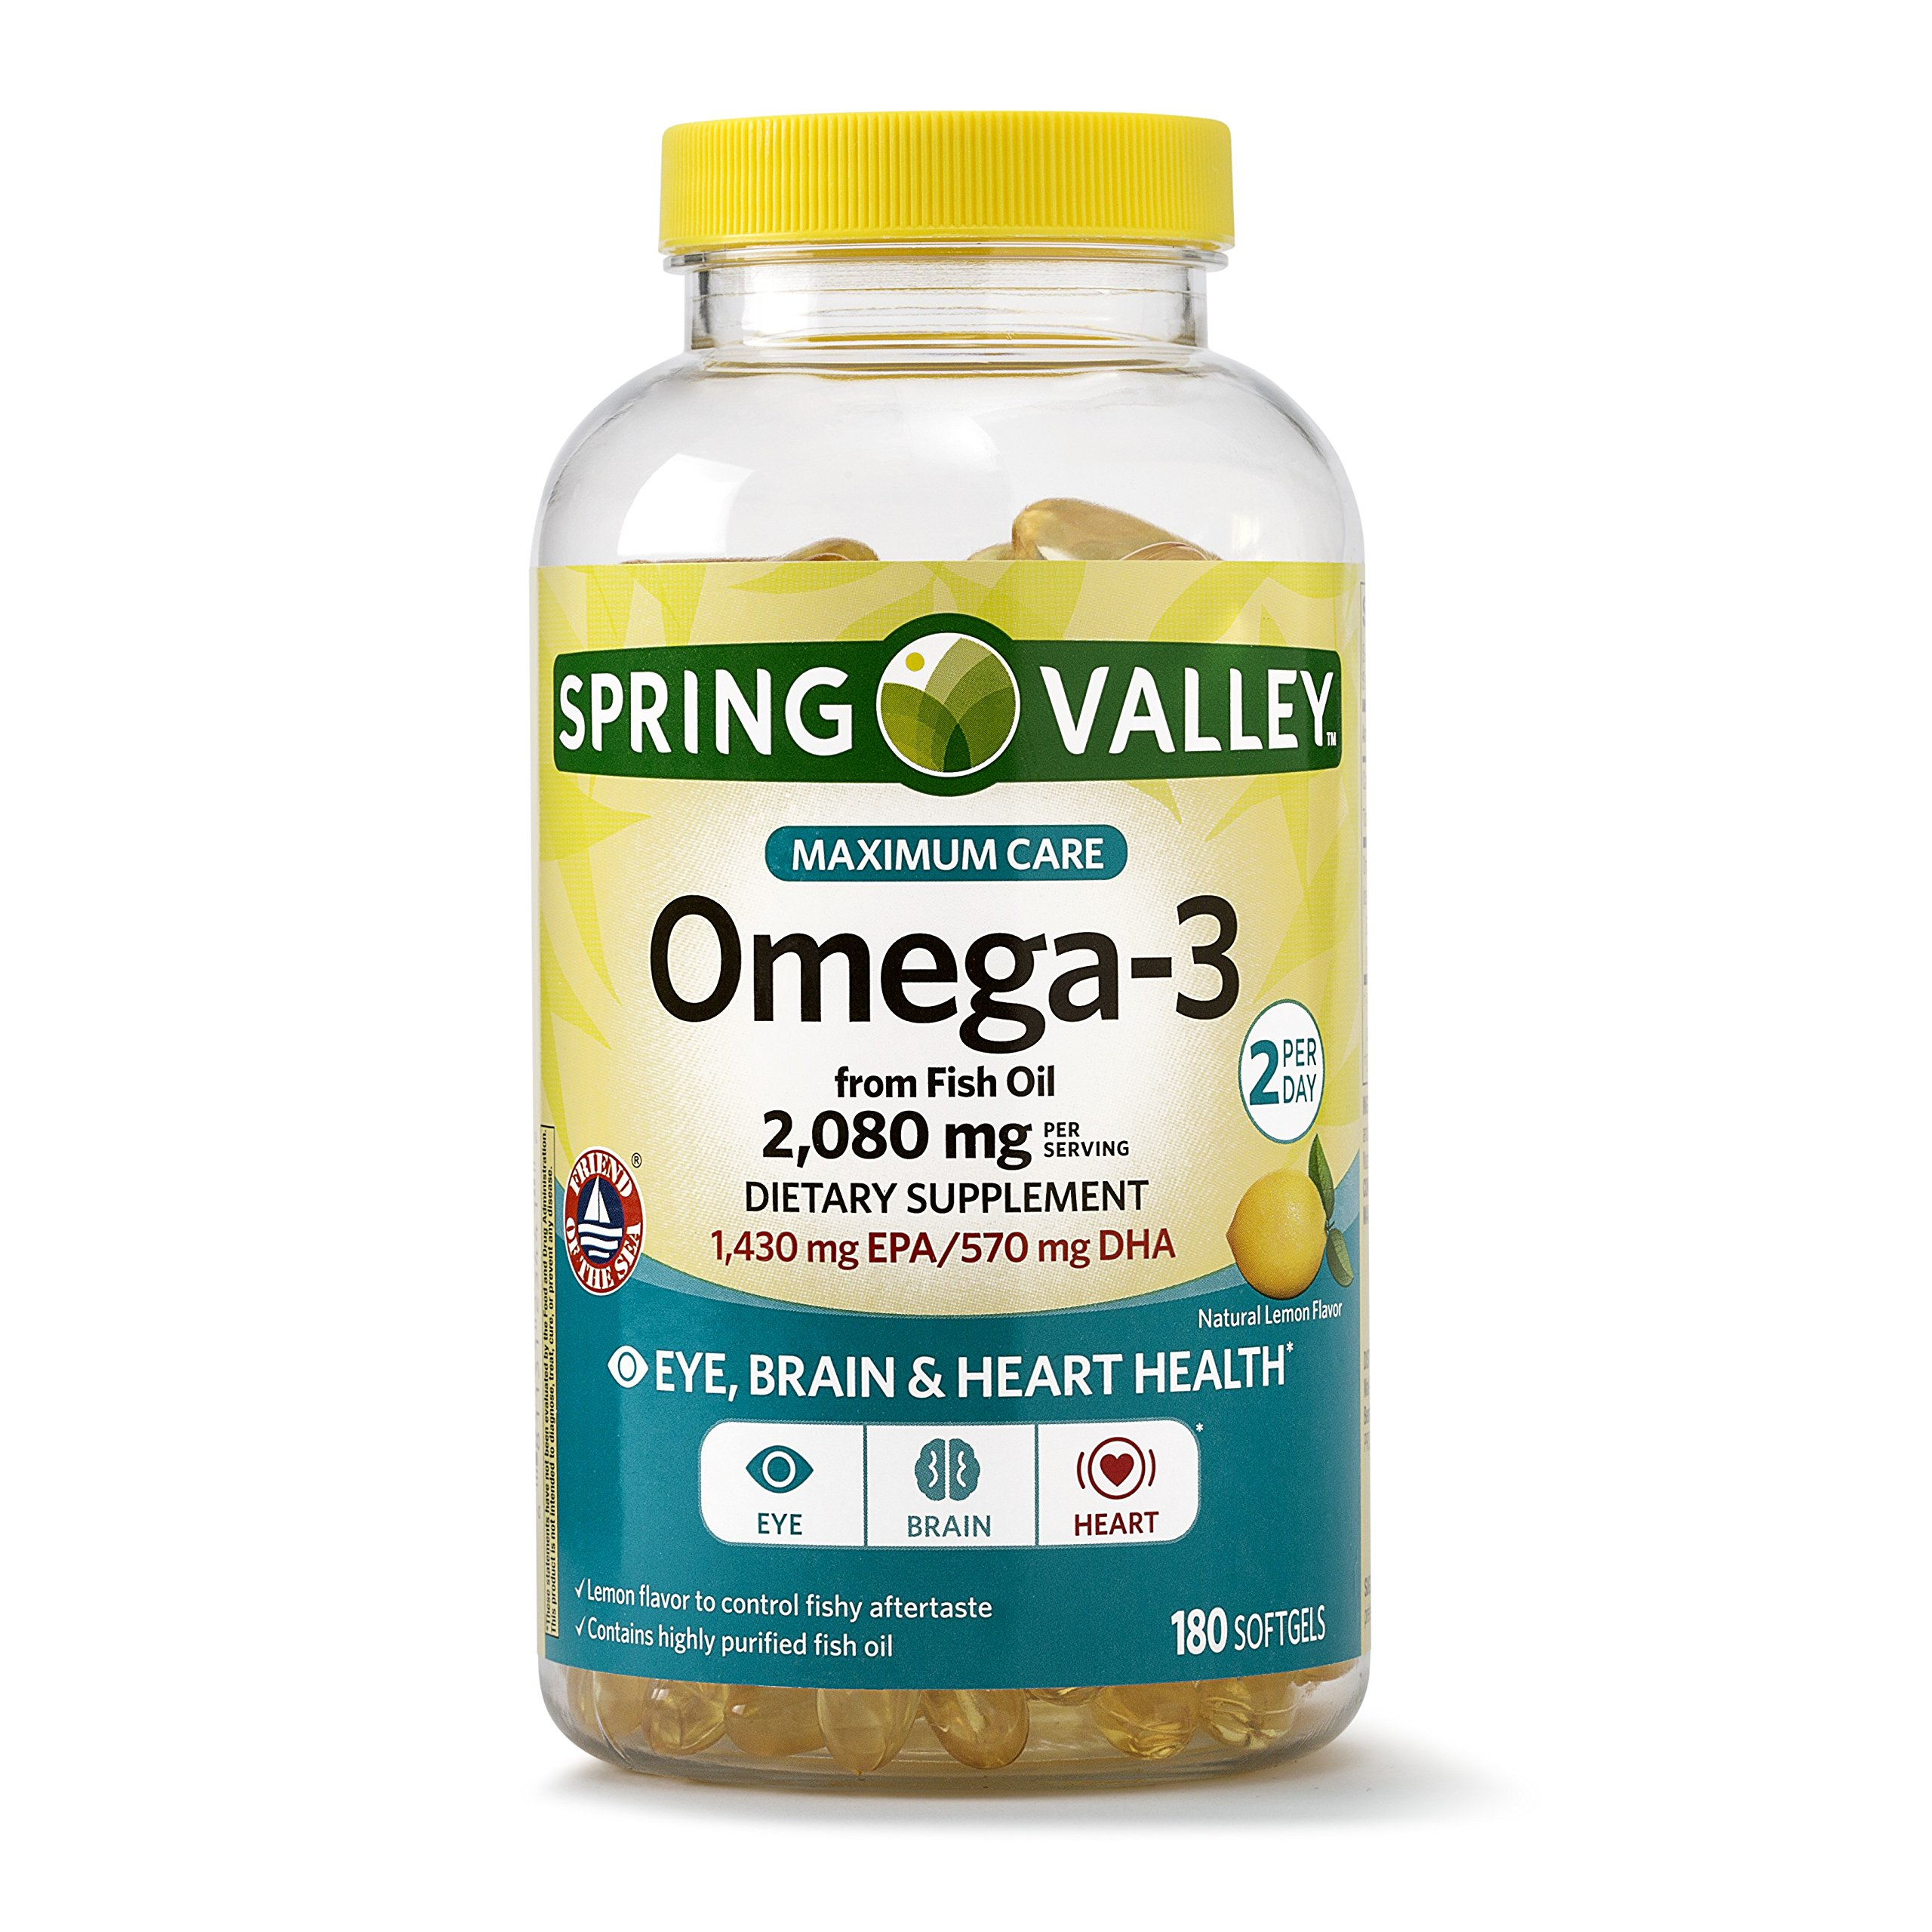 Spring Valley Omega-3 from Fish Oil Maximum Care, 2080 mg Omega-3, 180 Softgels